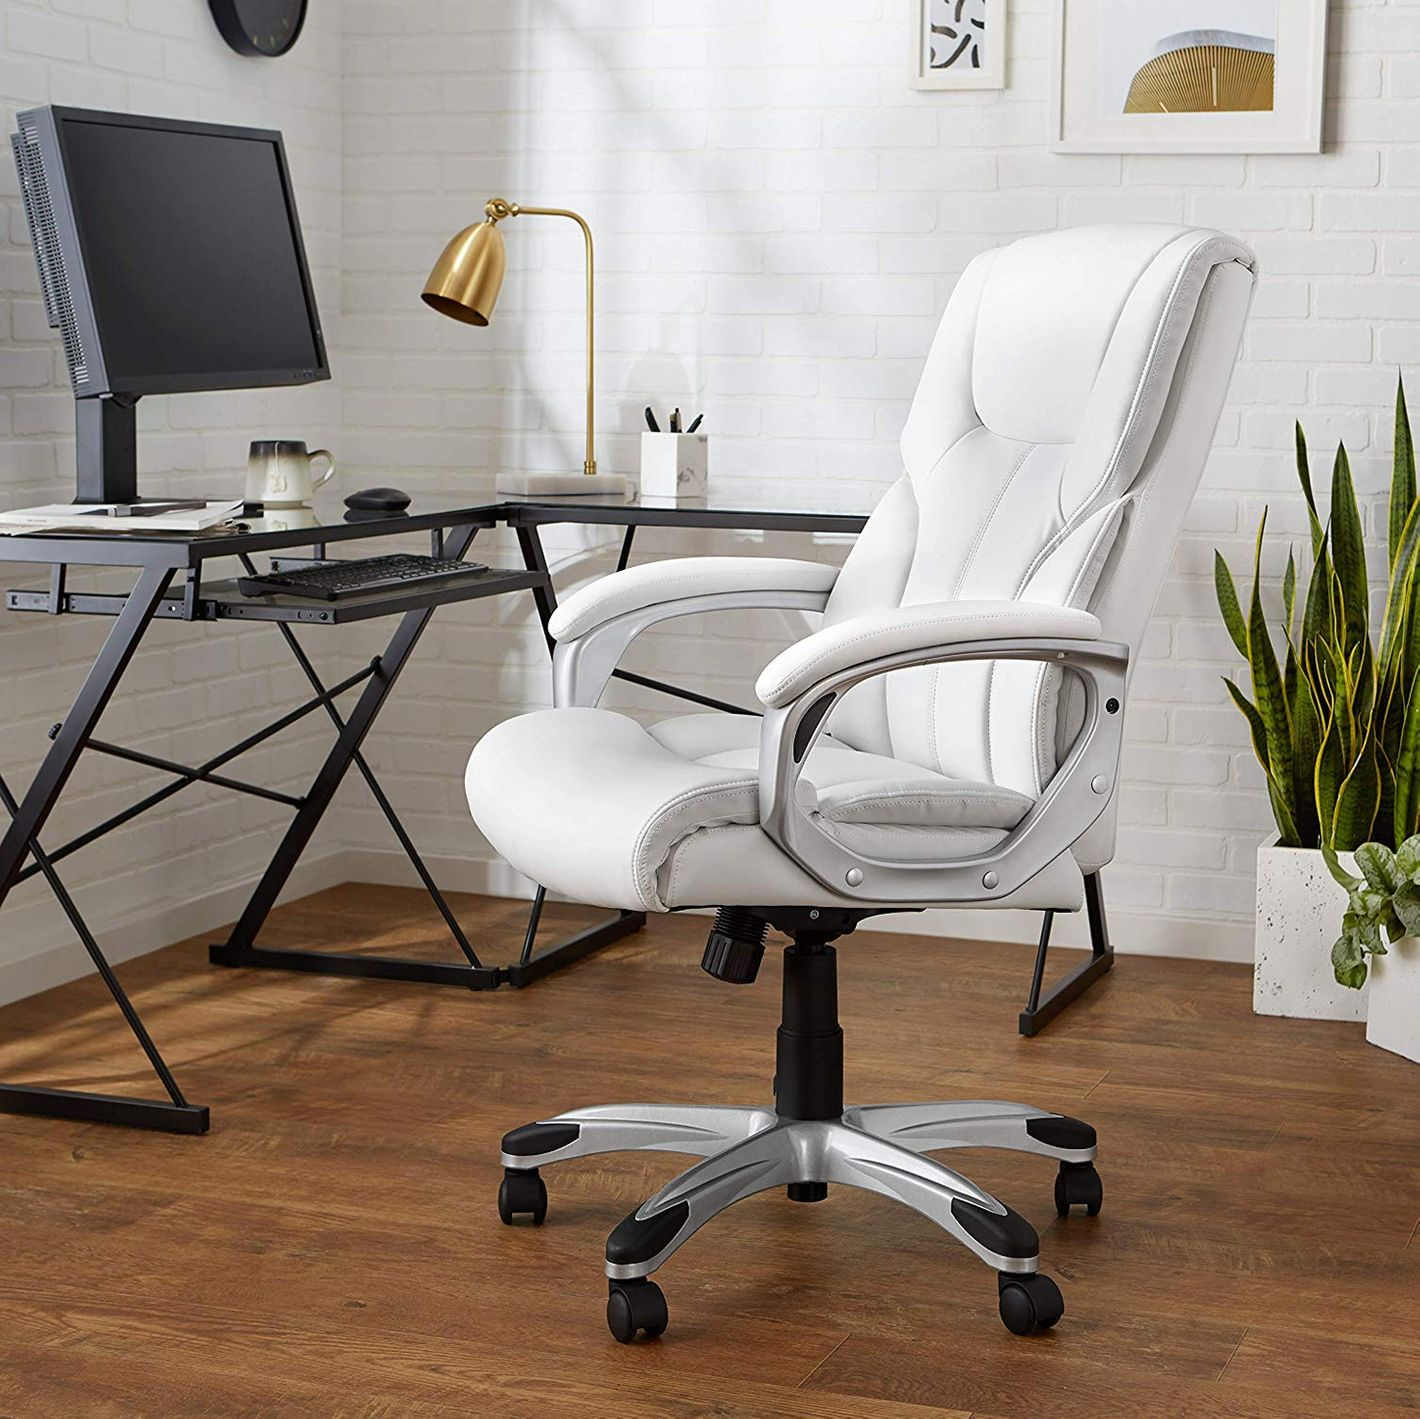 19 Best Office Chairs And Home-Office Chairs 2019